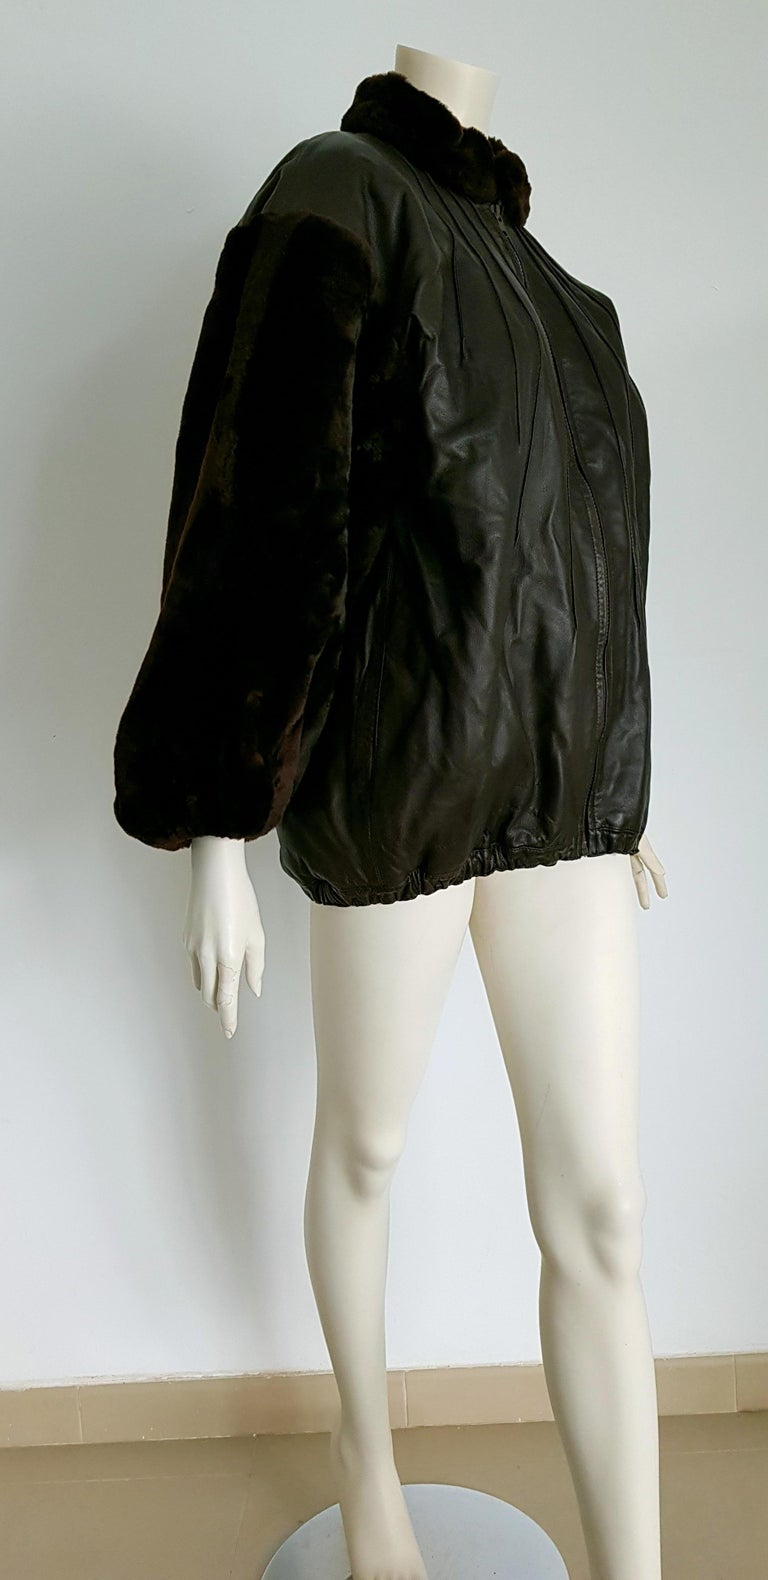 Yves SAINT LAURENT beaver Sleeves and Neck, Lambskin leather, Natural fur lined, Dark Brown acket  - Unworn, New.  SIZE: equivalent to about Small / Medium, please review approx measurements as follows in cm: lenght 74, chest underarm to underarm